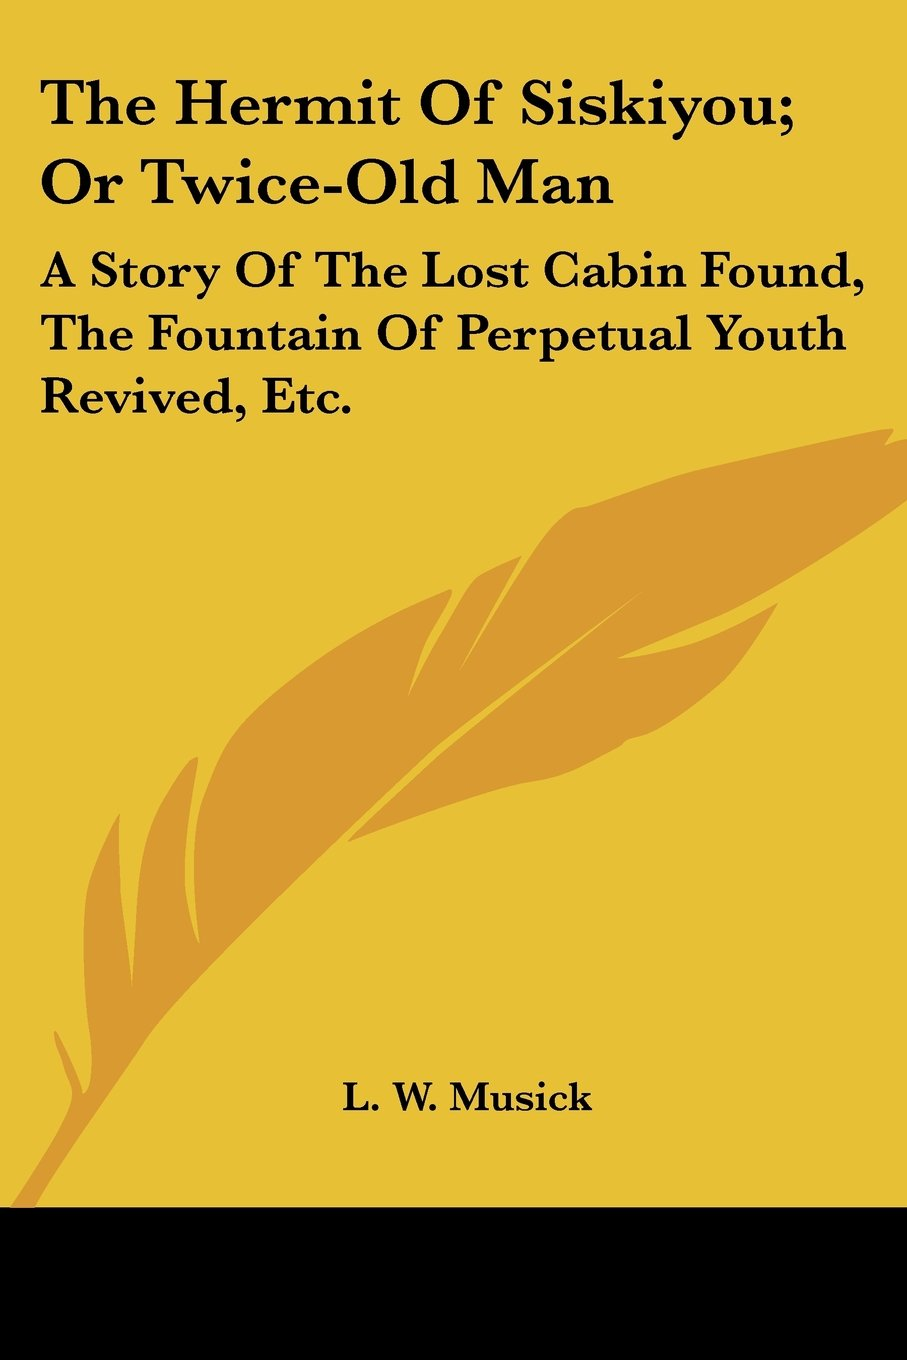 Read Online The Hermit Of Siskiyou; Or Twice-Old Man: A Story Of The Lost Cabin Found, The Fountain Of Perpetual Youth Revived, Etc. PDF